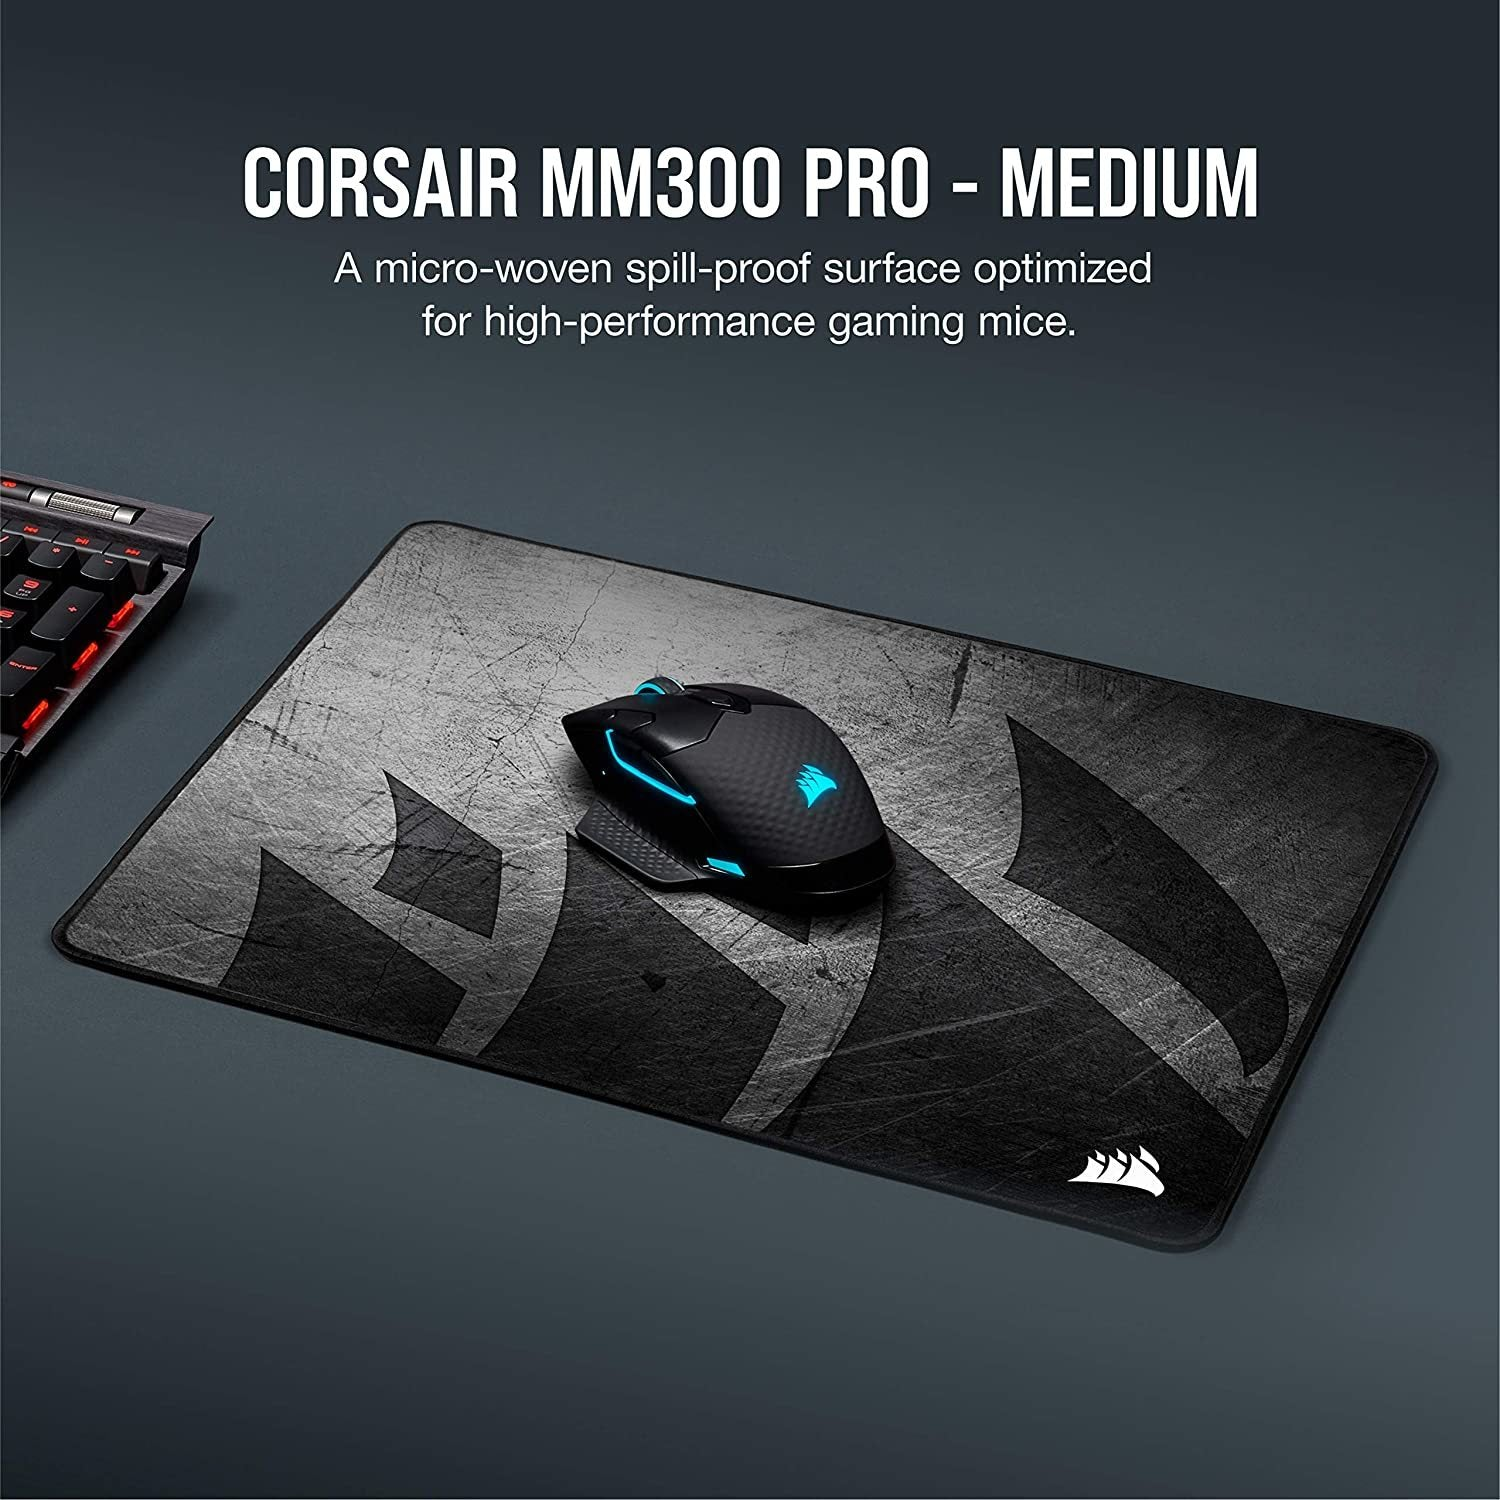 Corsair MM300 PRO Premium Spill-Proof Cloth Gaming Mouse Pad (Medium) - PC Games